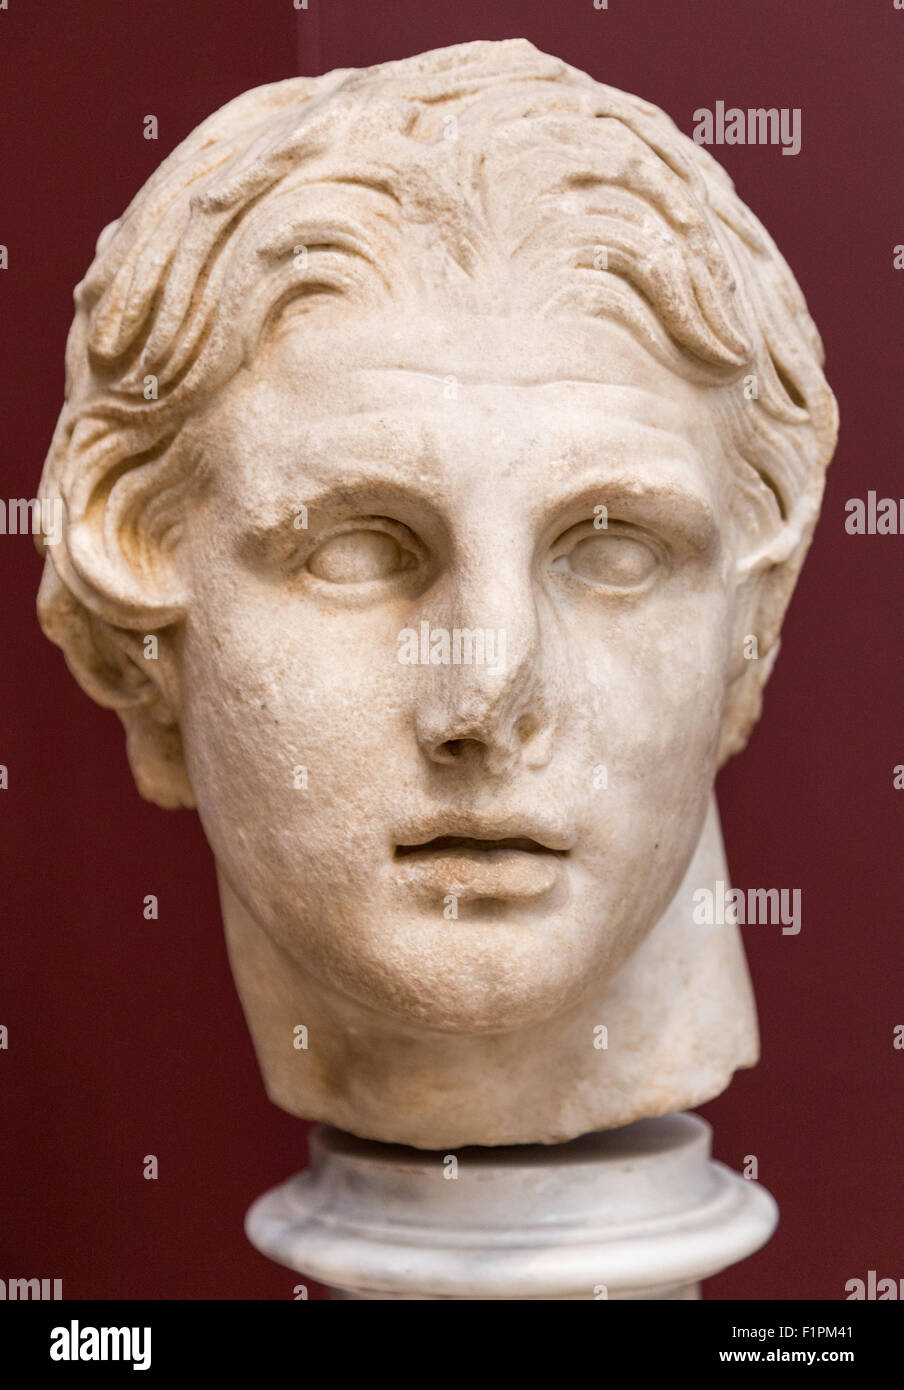 A Marble Head of Alexander The Great 2nd Century BC on display in the Archeology Museum in Istanbul Turkey - Stock Image